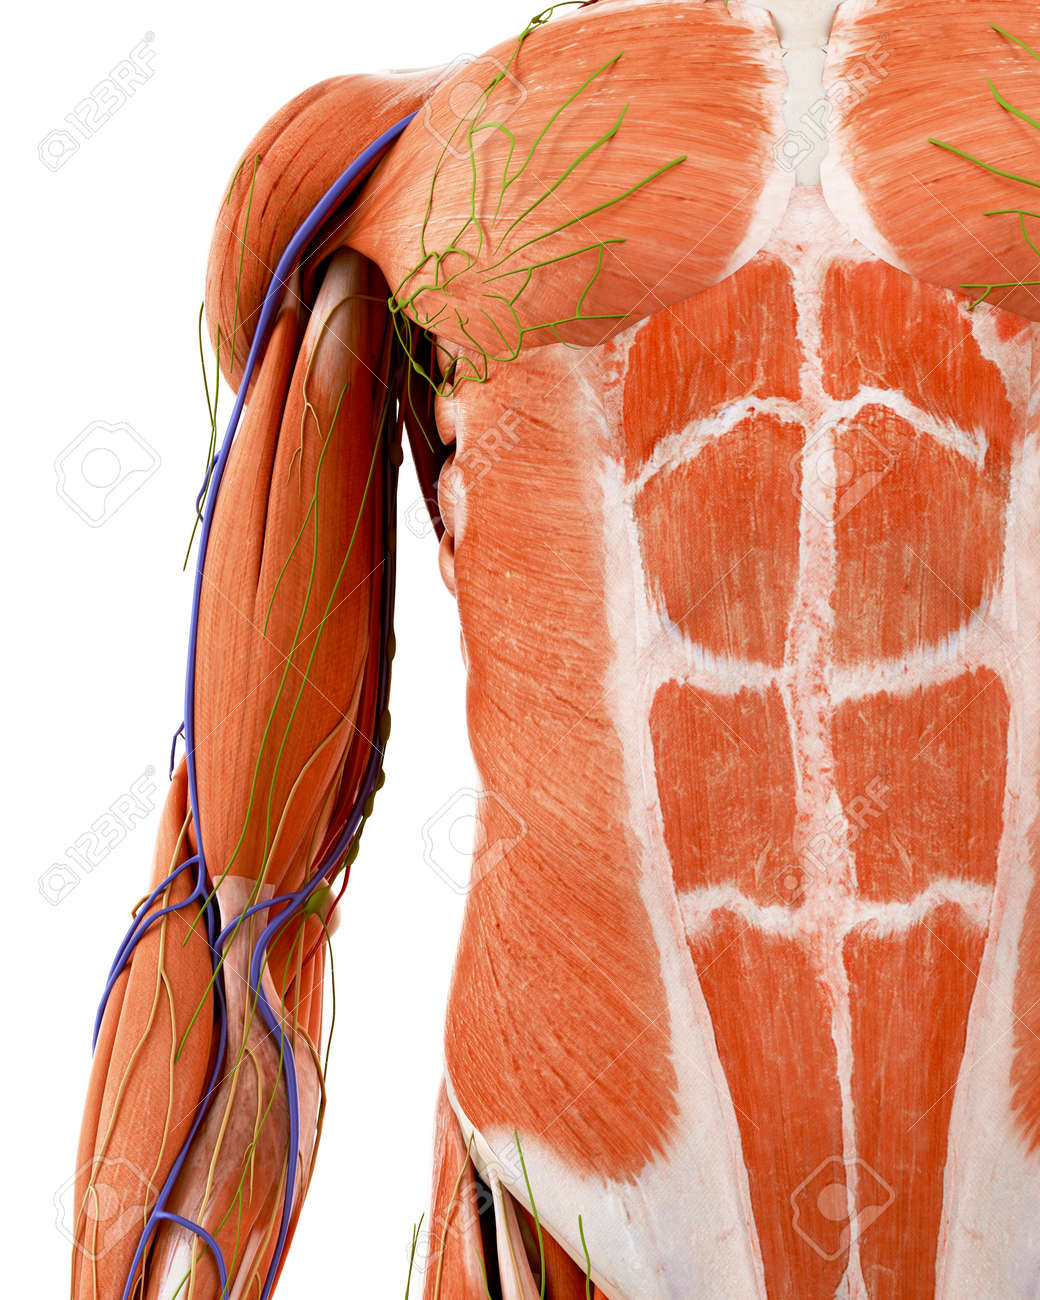 Medically Accurate Illustration Of The Human Upper Arm Anatomy Stock